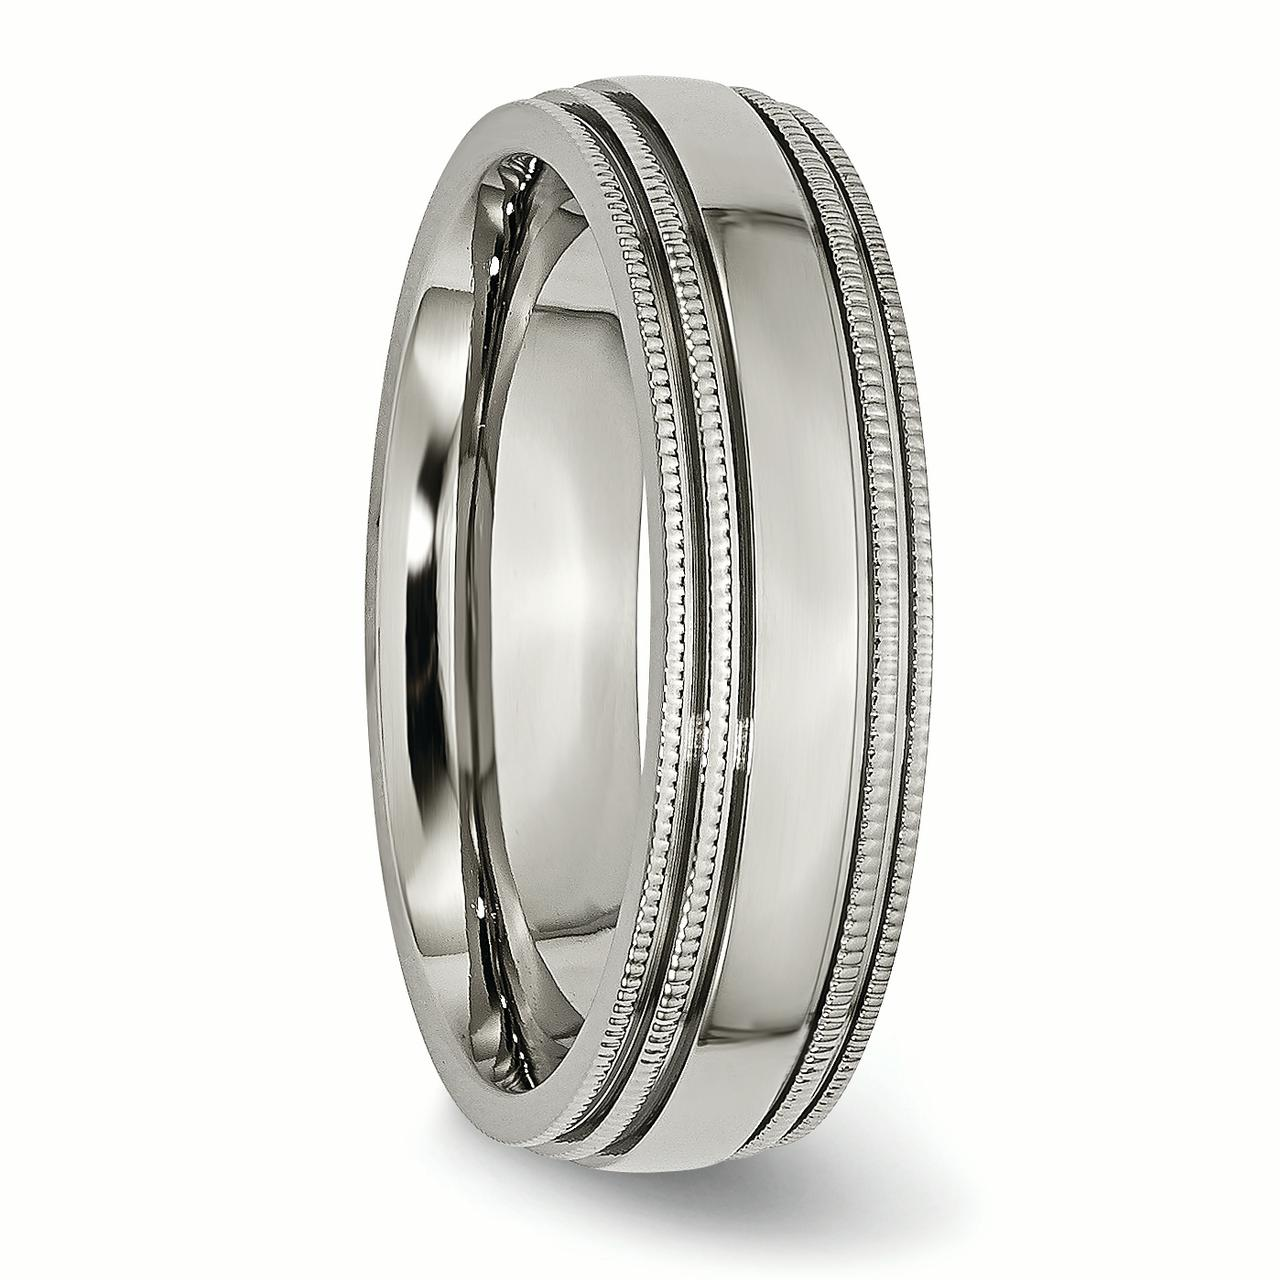 Titanium Grooved and Beaded Edge 6mm Polished Band Ring 8 Size - image 2 de 6